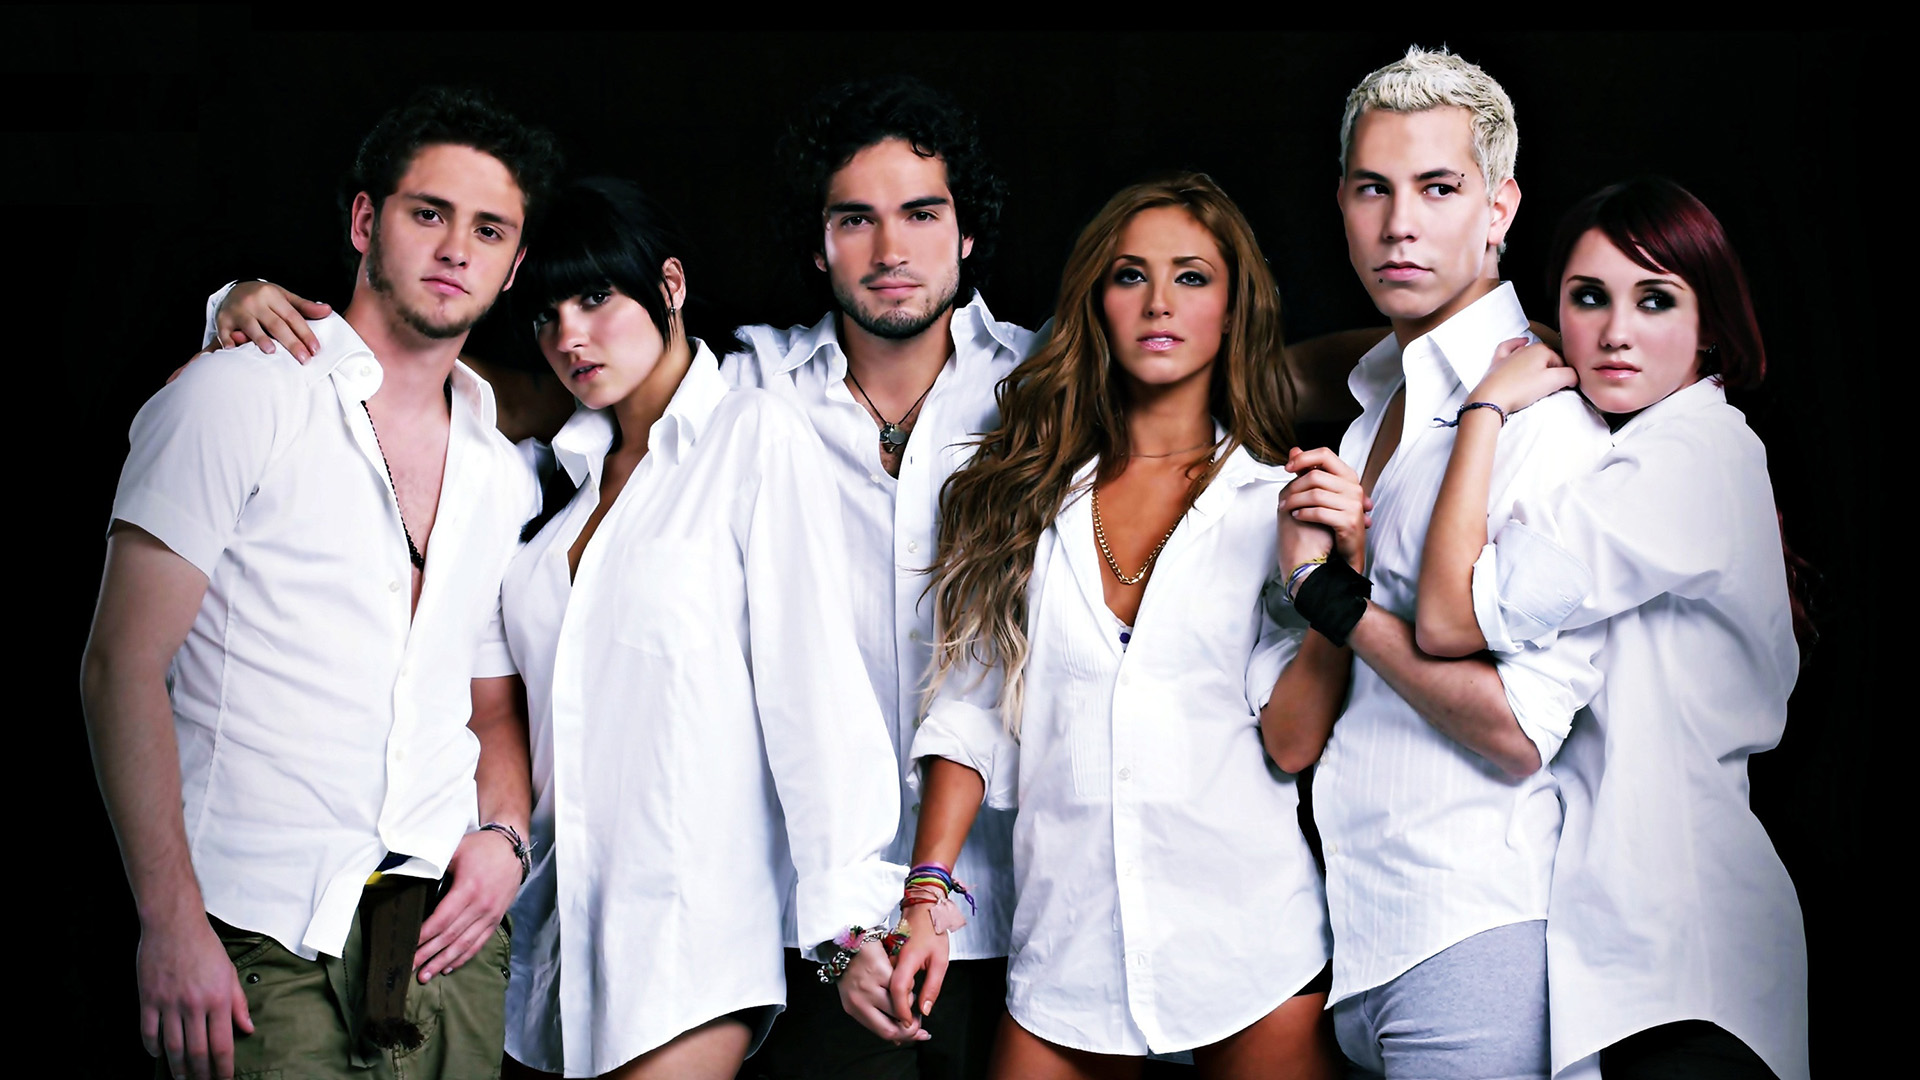 Left to Right: RBD (Christopher Von Uckermann, Maite Perroni, Alfonso Herrera, Anahi, Christian Chavez, and Dulce Maria)